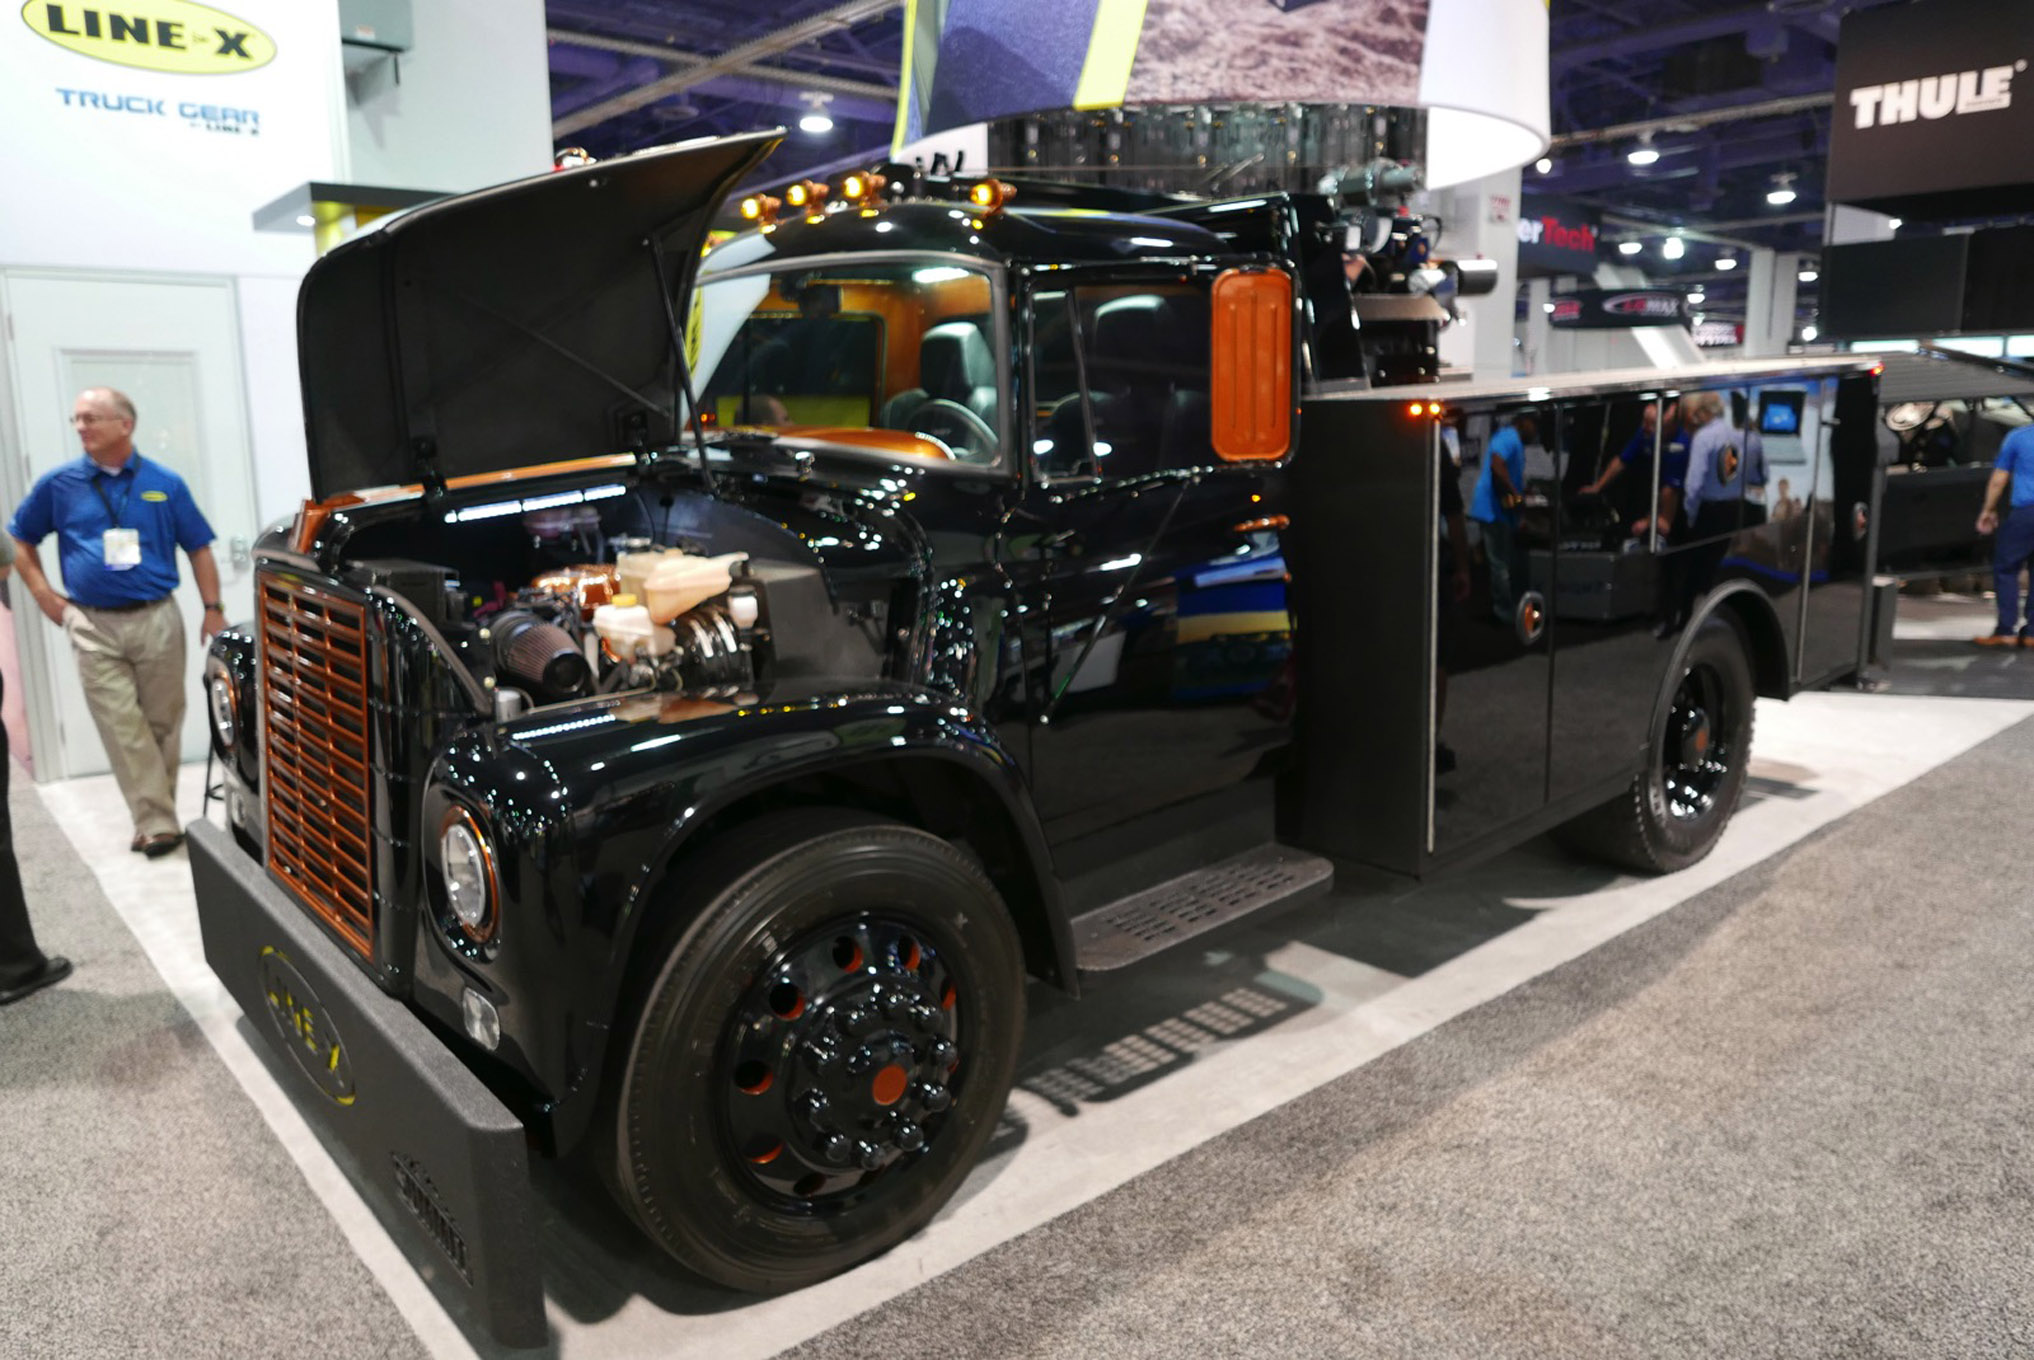 163 sema 2017 day 1 south upper hall gallery photos